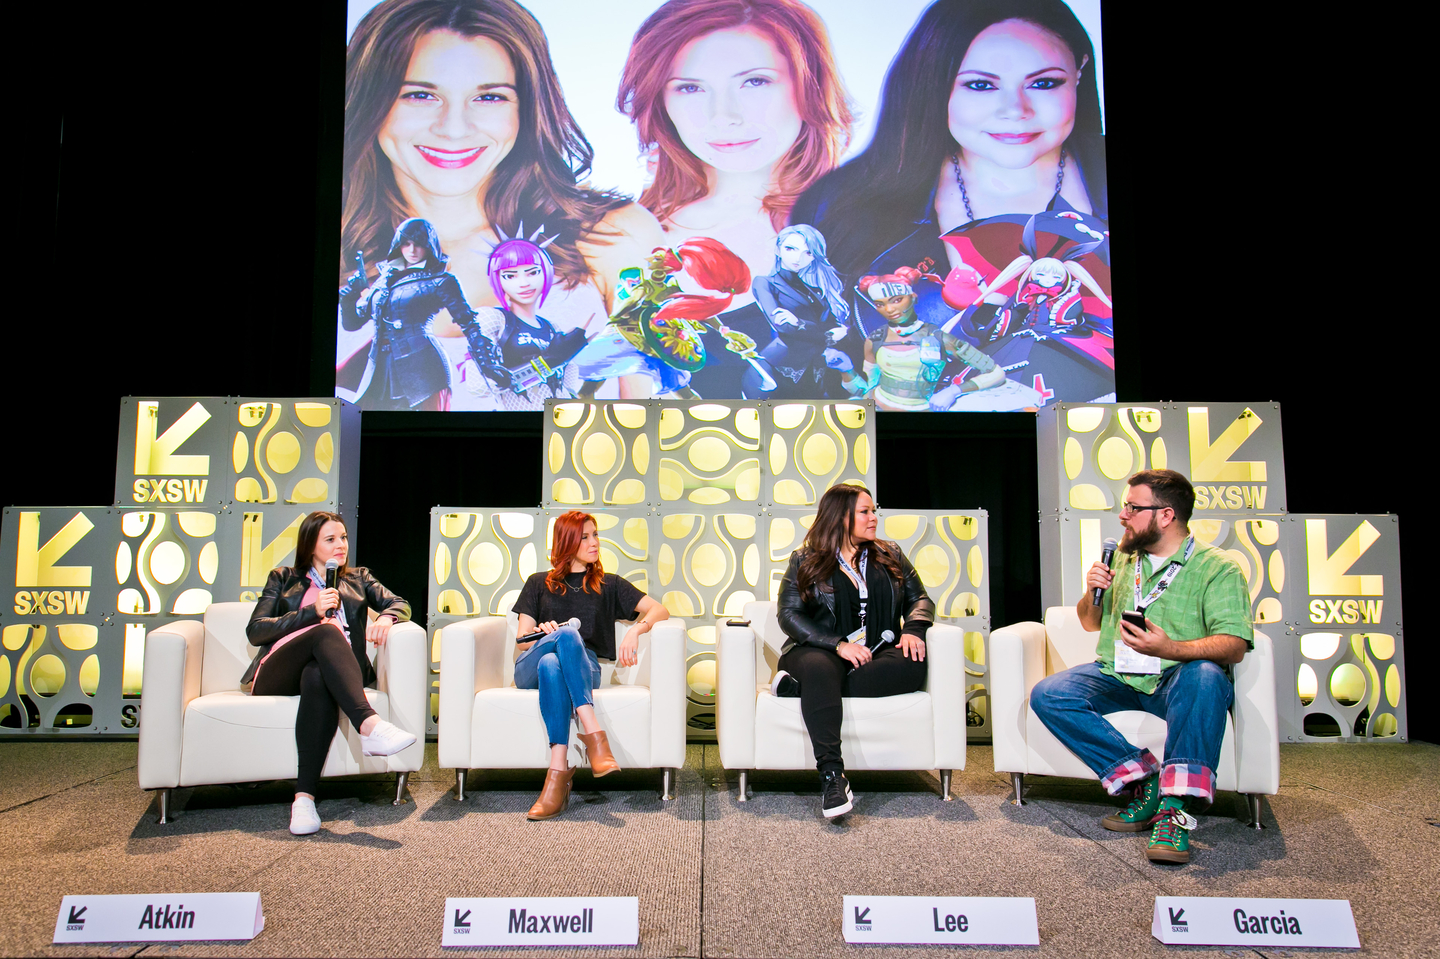 Victoria Atkin, Elizabeth Maxwell, and Mela Lee speaking at the New Voices in Gaming panel on the Discovery Stage at SXSW Gaming 2019. Photo by Travis Lilley